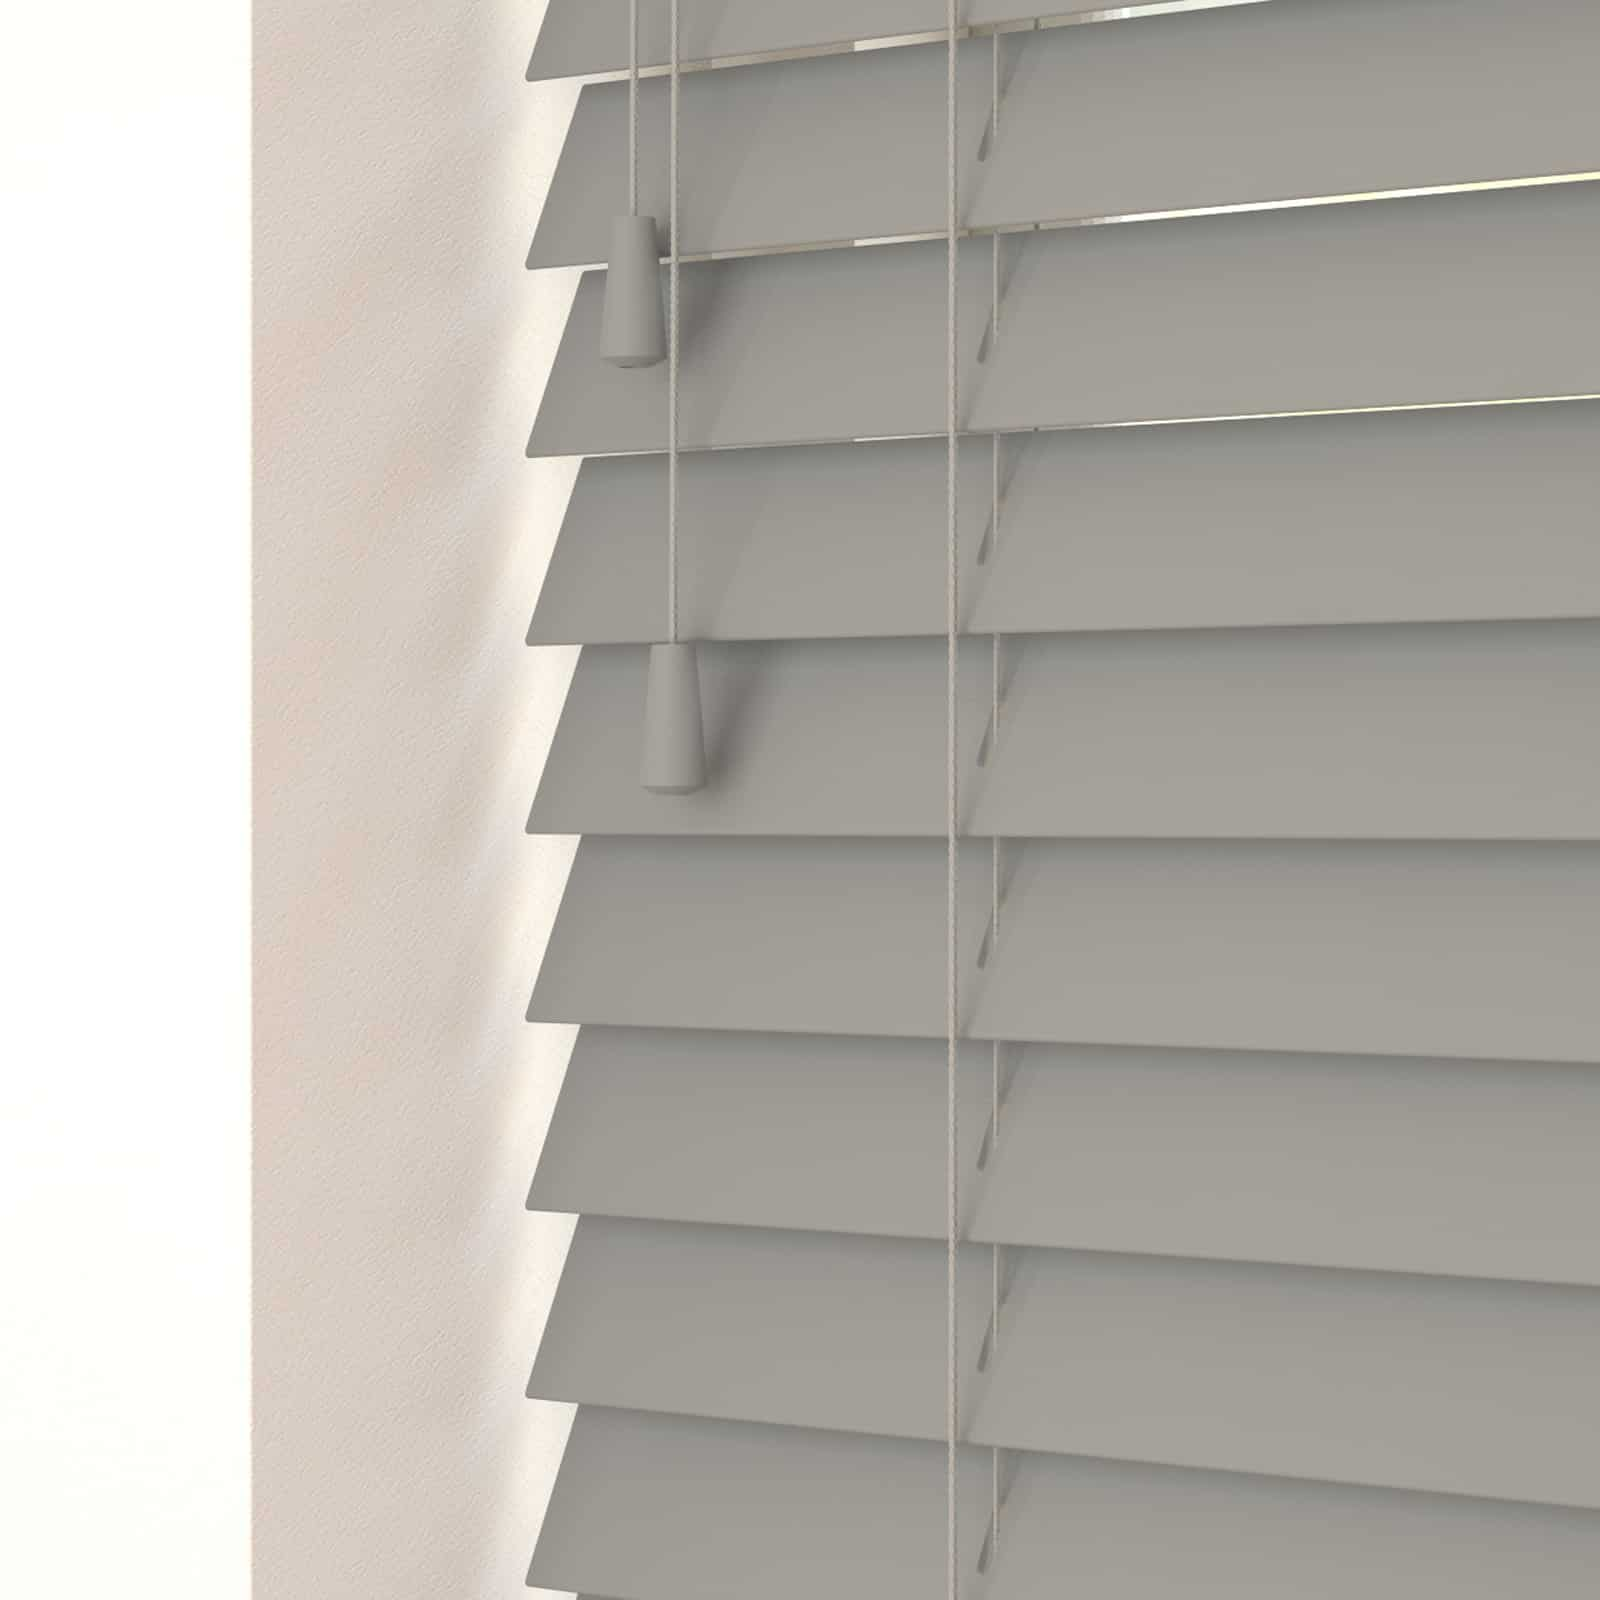 Pvc Jalousien Cheapest Blinds Uk Ltd | Steel Grey Faux Wood (with Cords)